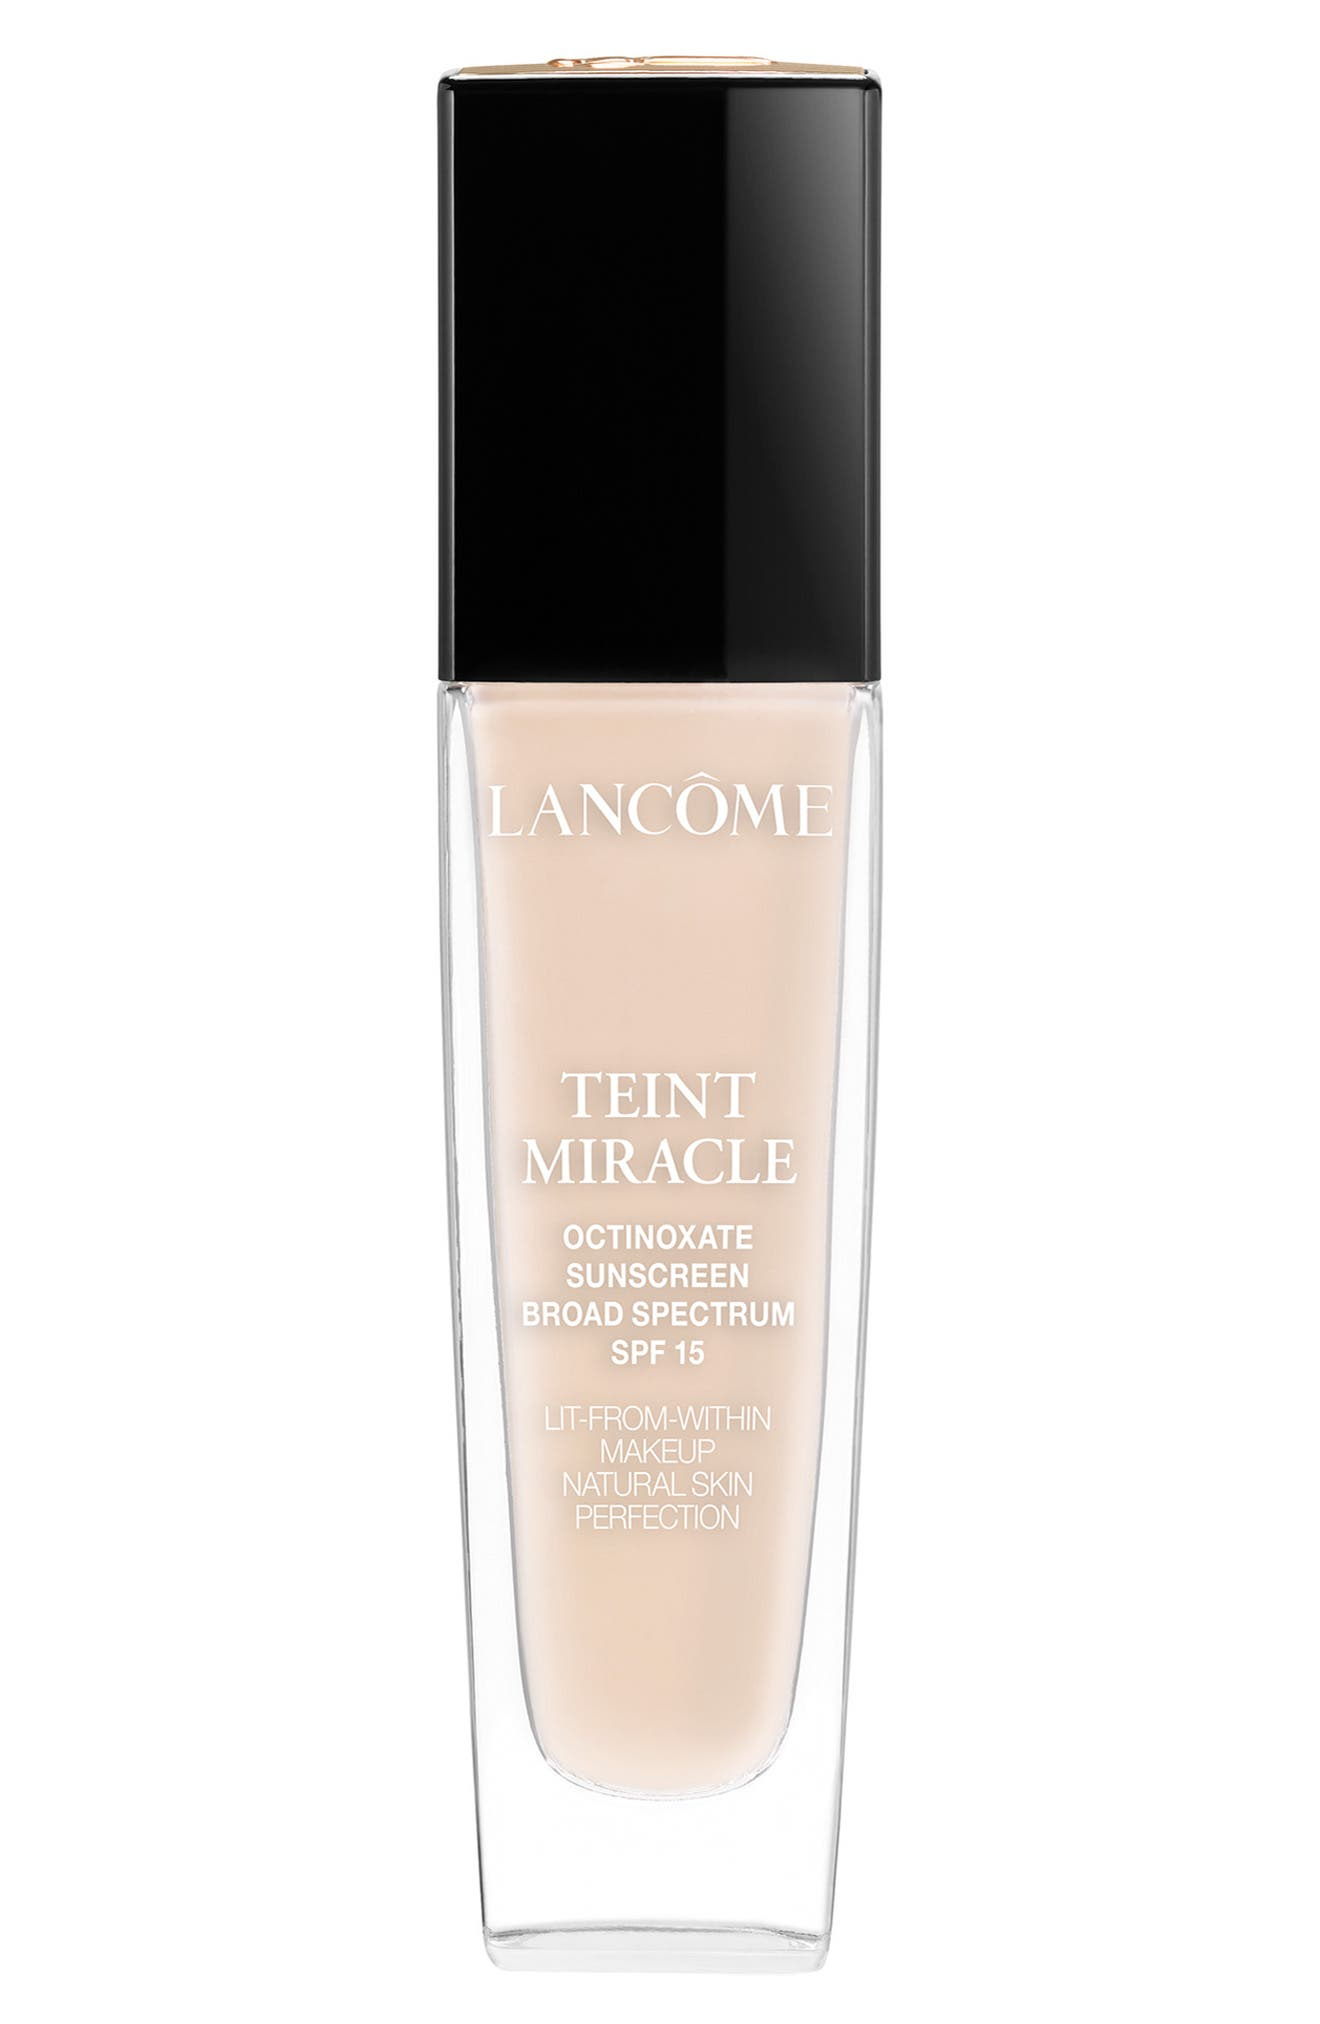 LANCÔME, Teint Miracle Lit-from-Within Makeup Natural Skin Perfection SPF 15, Main thumbnail 1, color, BUFF 2 (W)